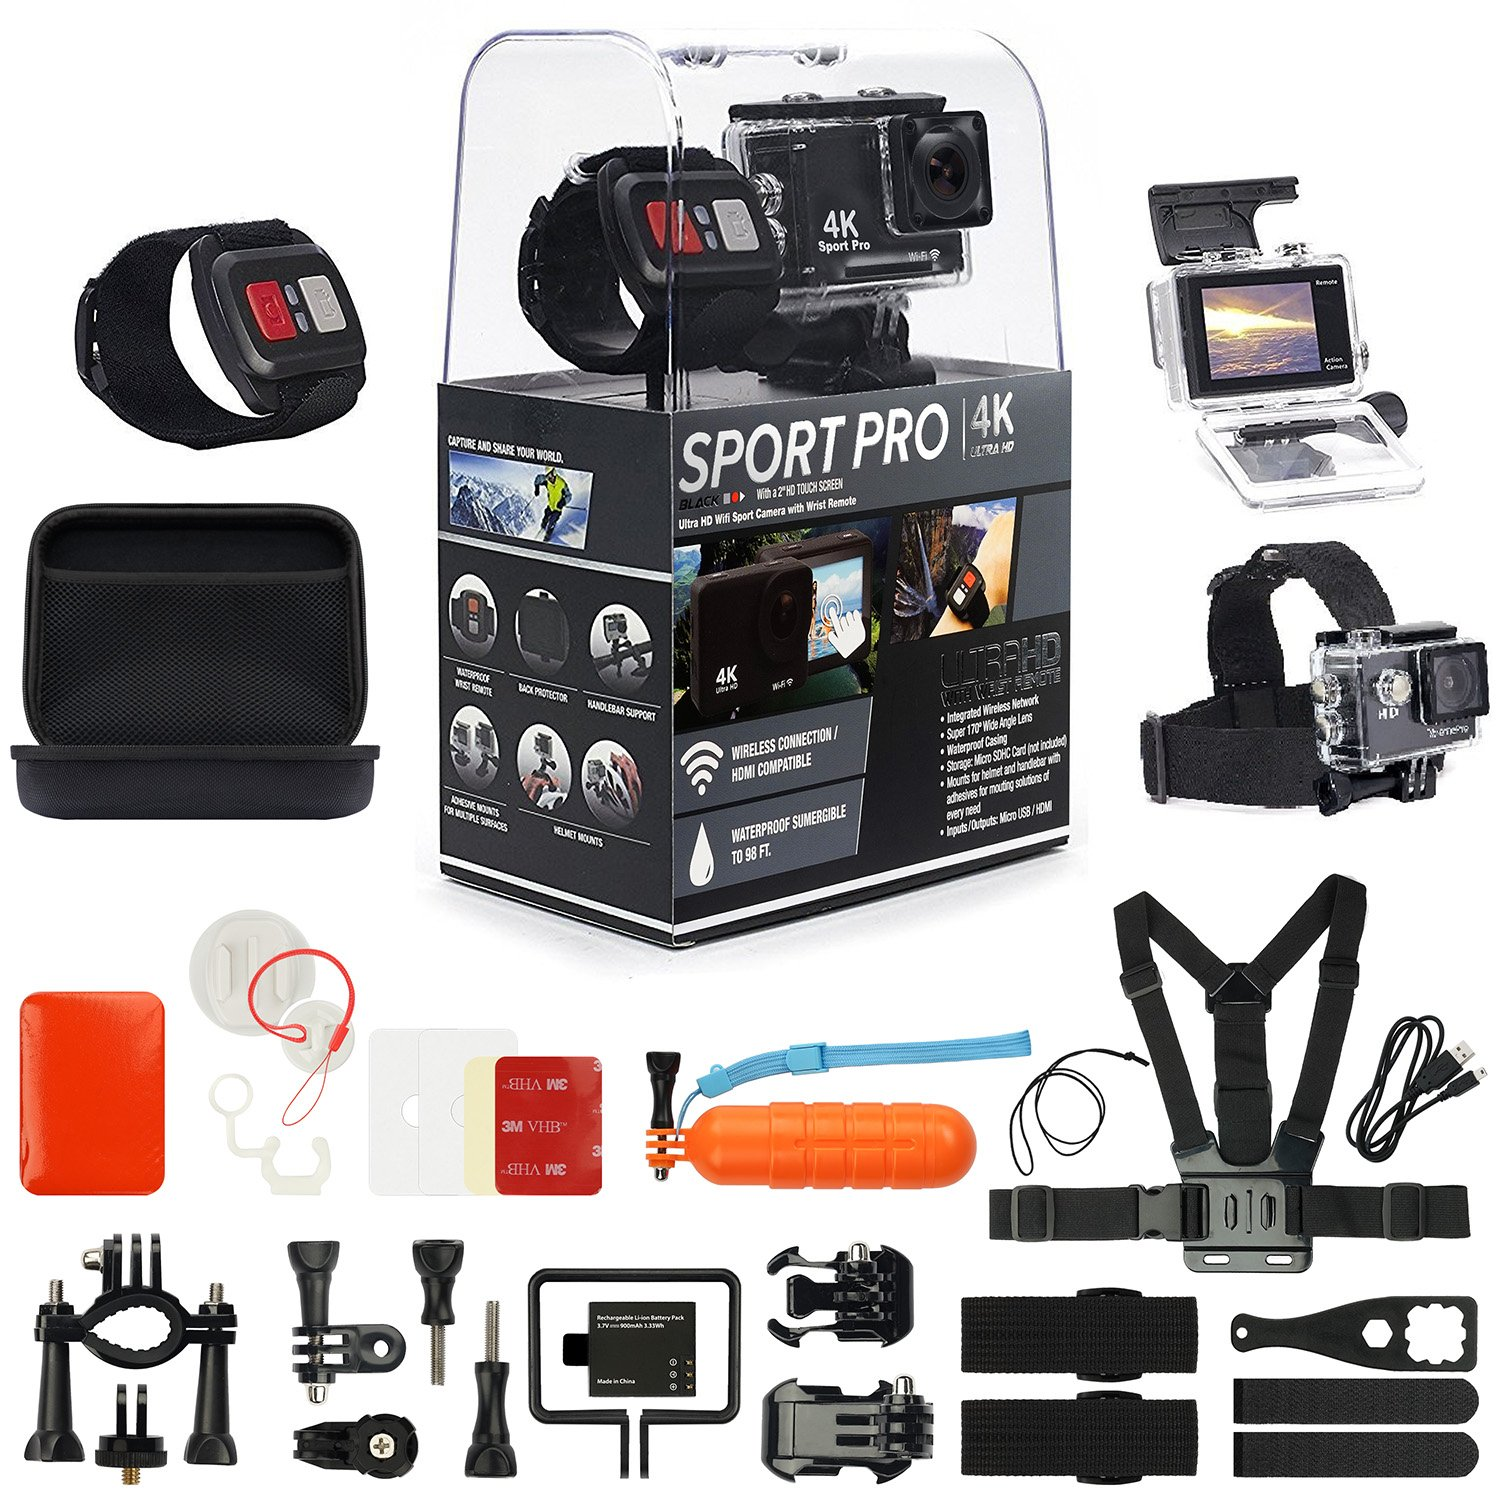 SportPro 4K UHD Wifi TOUCH SCREEN Action Camera with Wireless Wrist Remote and Super Premium Accessory Kit - Touch Screen and Wireless Wrist Remote - 4K@30FPS Ultra HD - Extra Battery – Chest Strap